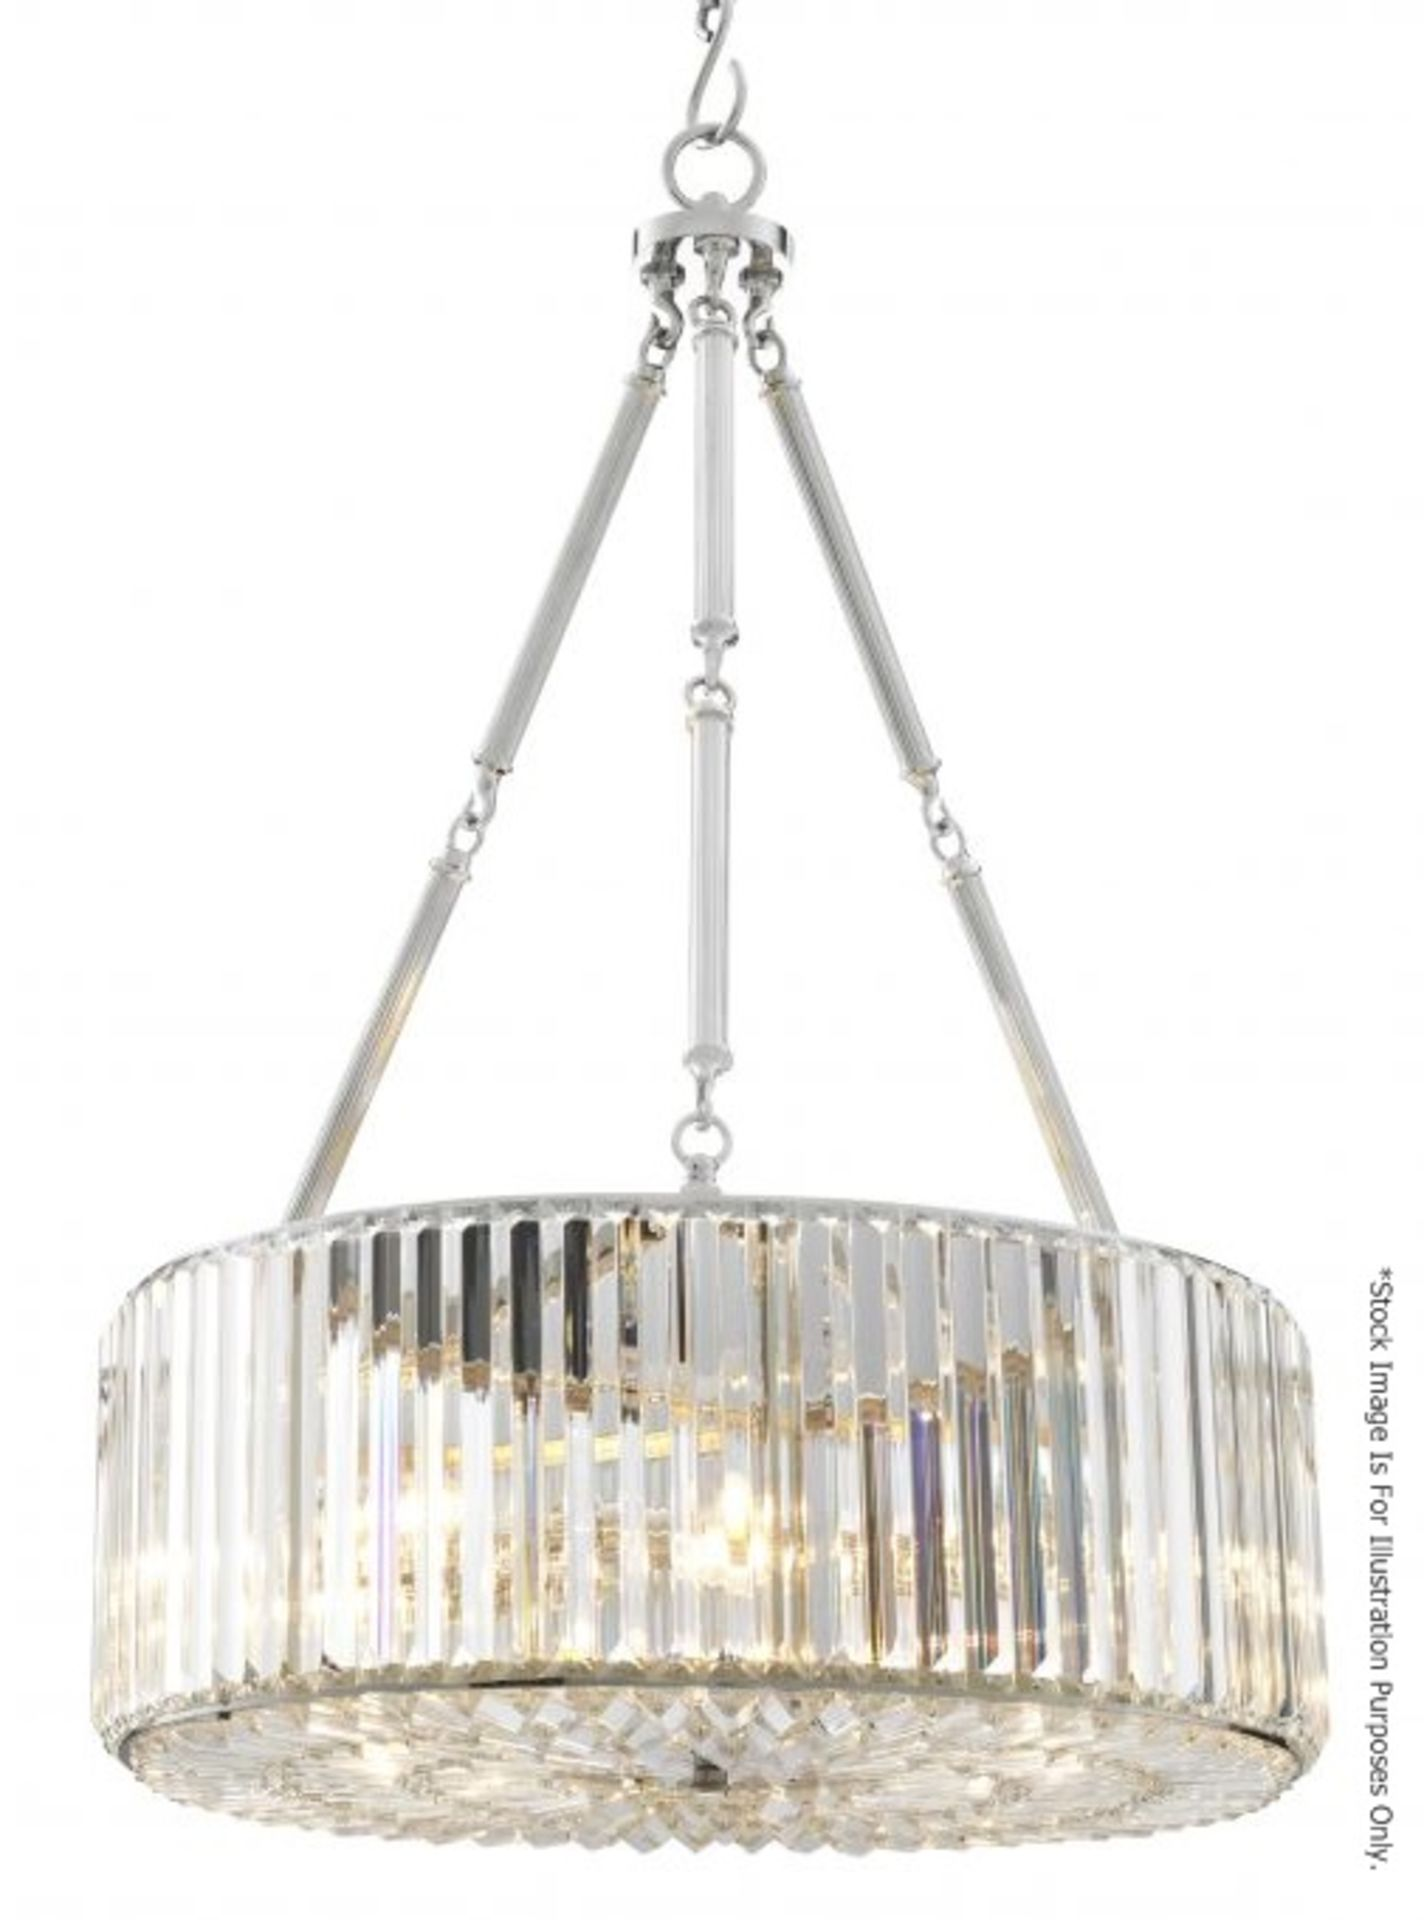 1 x EICHHOLTZ 'Infinity' Art Deco-style Chandelier Featuring Glass Crystal Rods - RRP £1,390